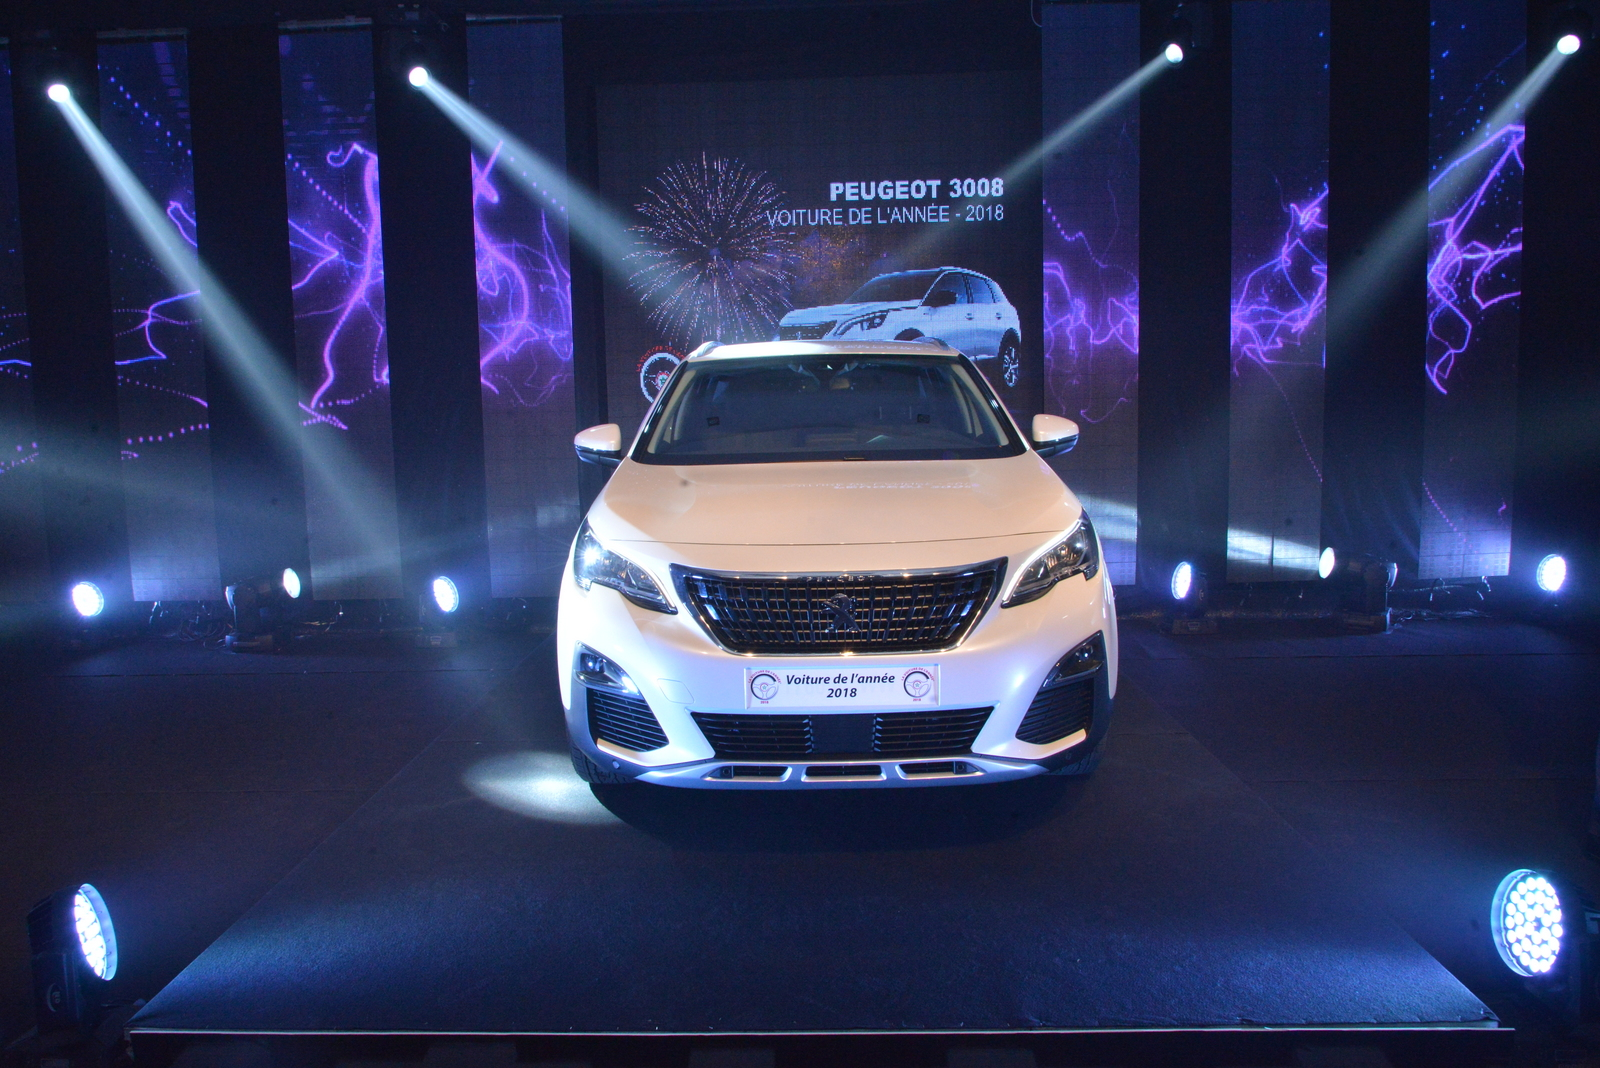 Peugeot 3008 Wins 2018 Car of the Year Award in Morocco